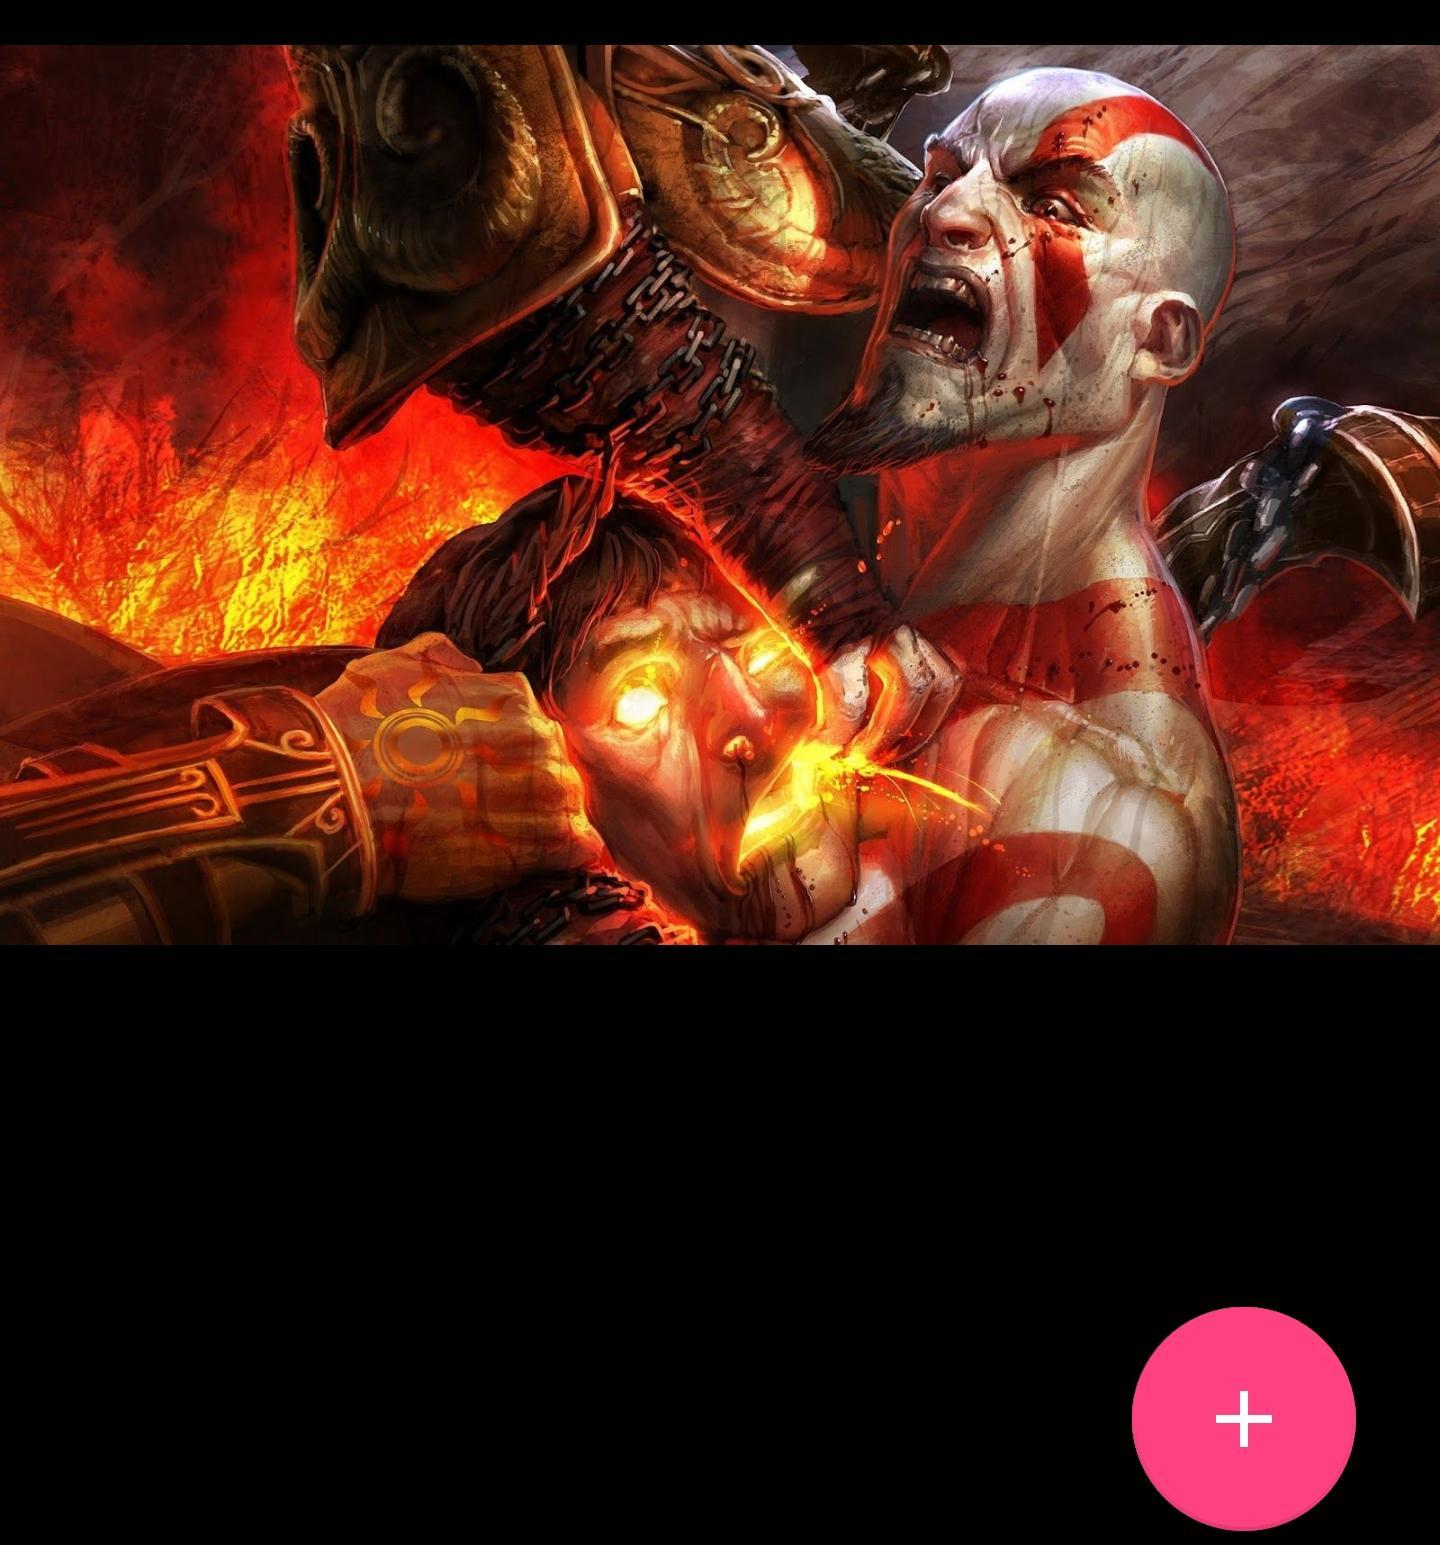 God Of War Hd Wallpaper For Android Apk Download